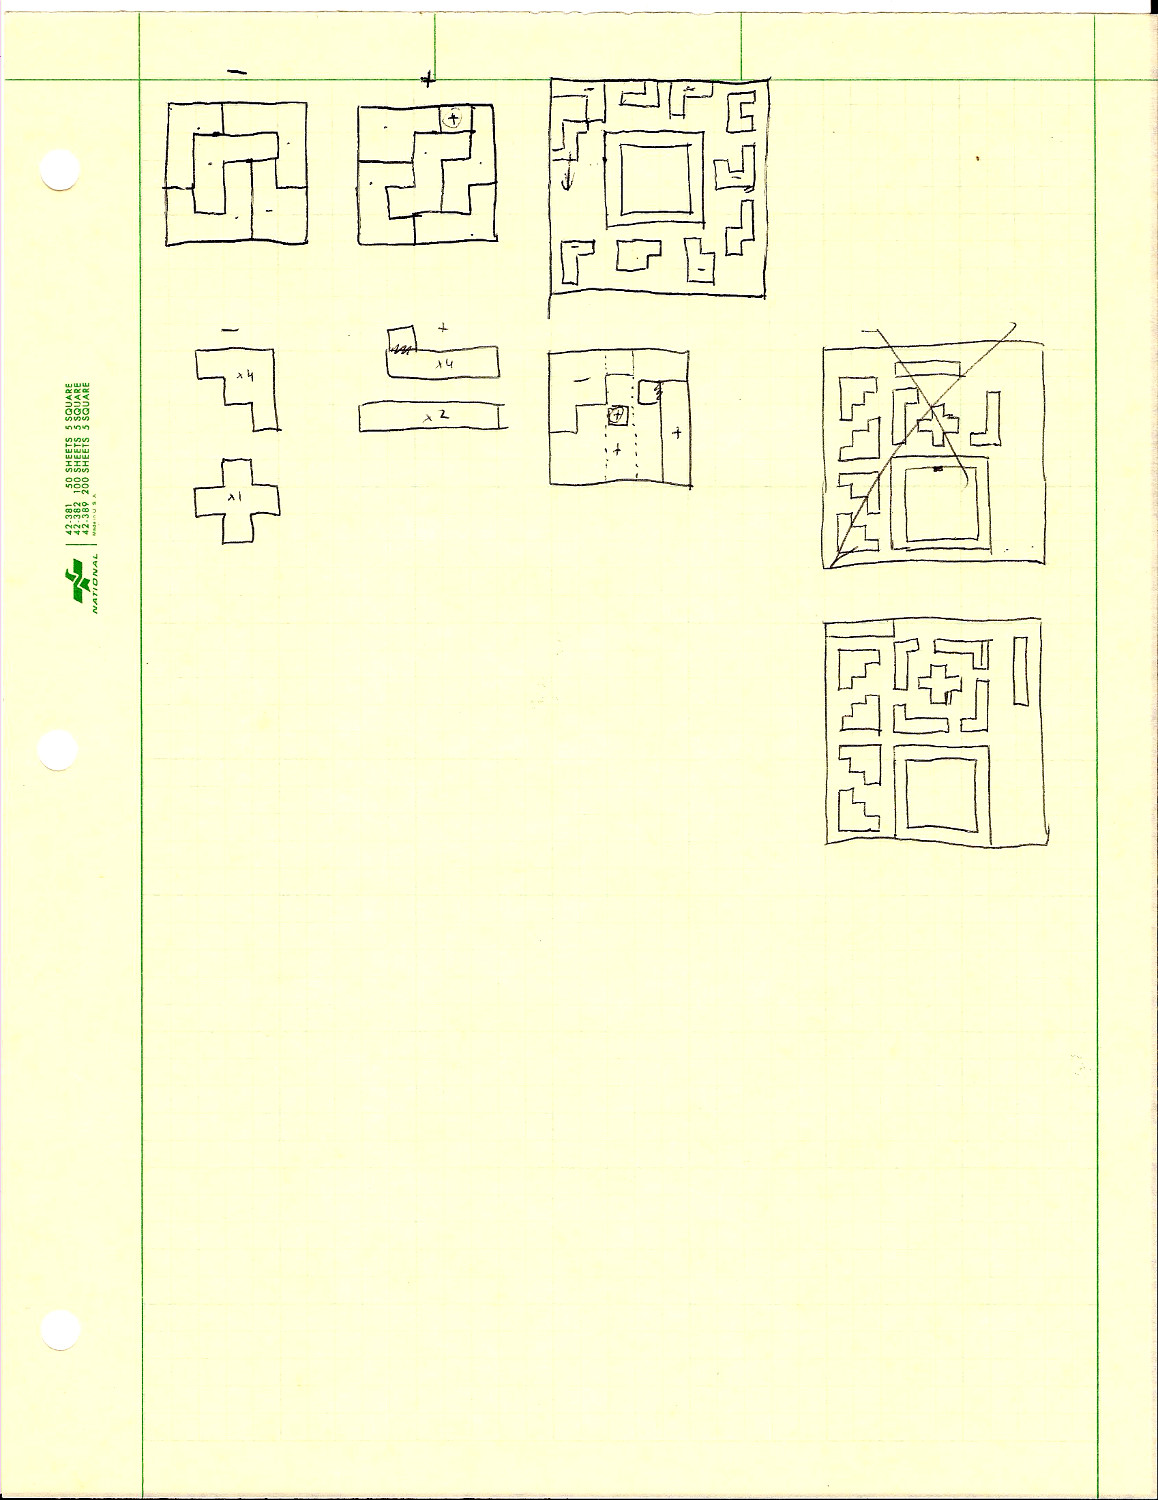 system s twilight design notes Check Inventory Log antitris puzzle designs antitris puzzle designs